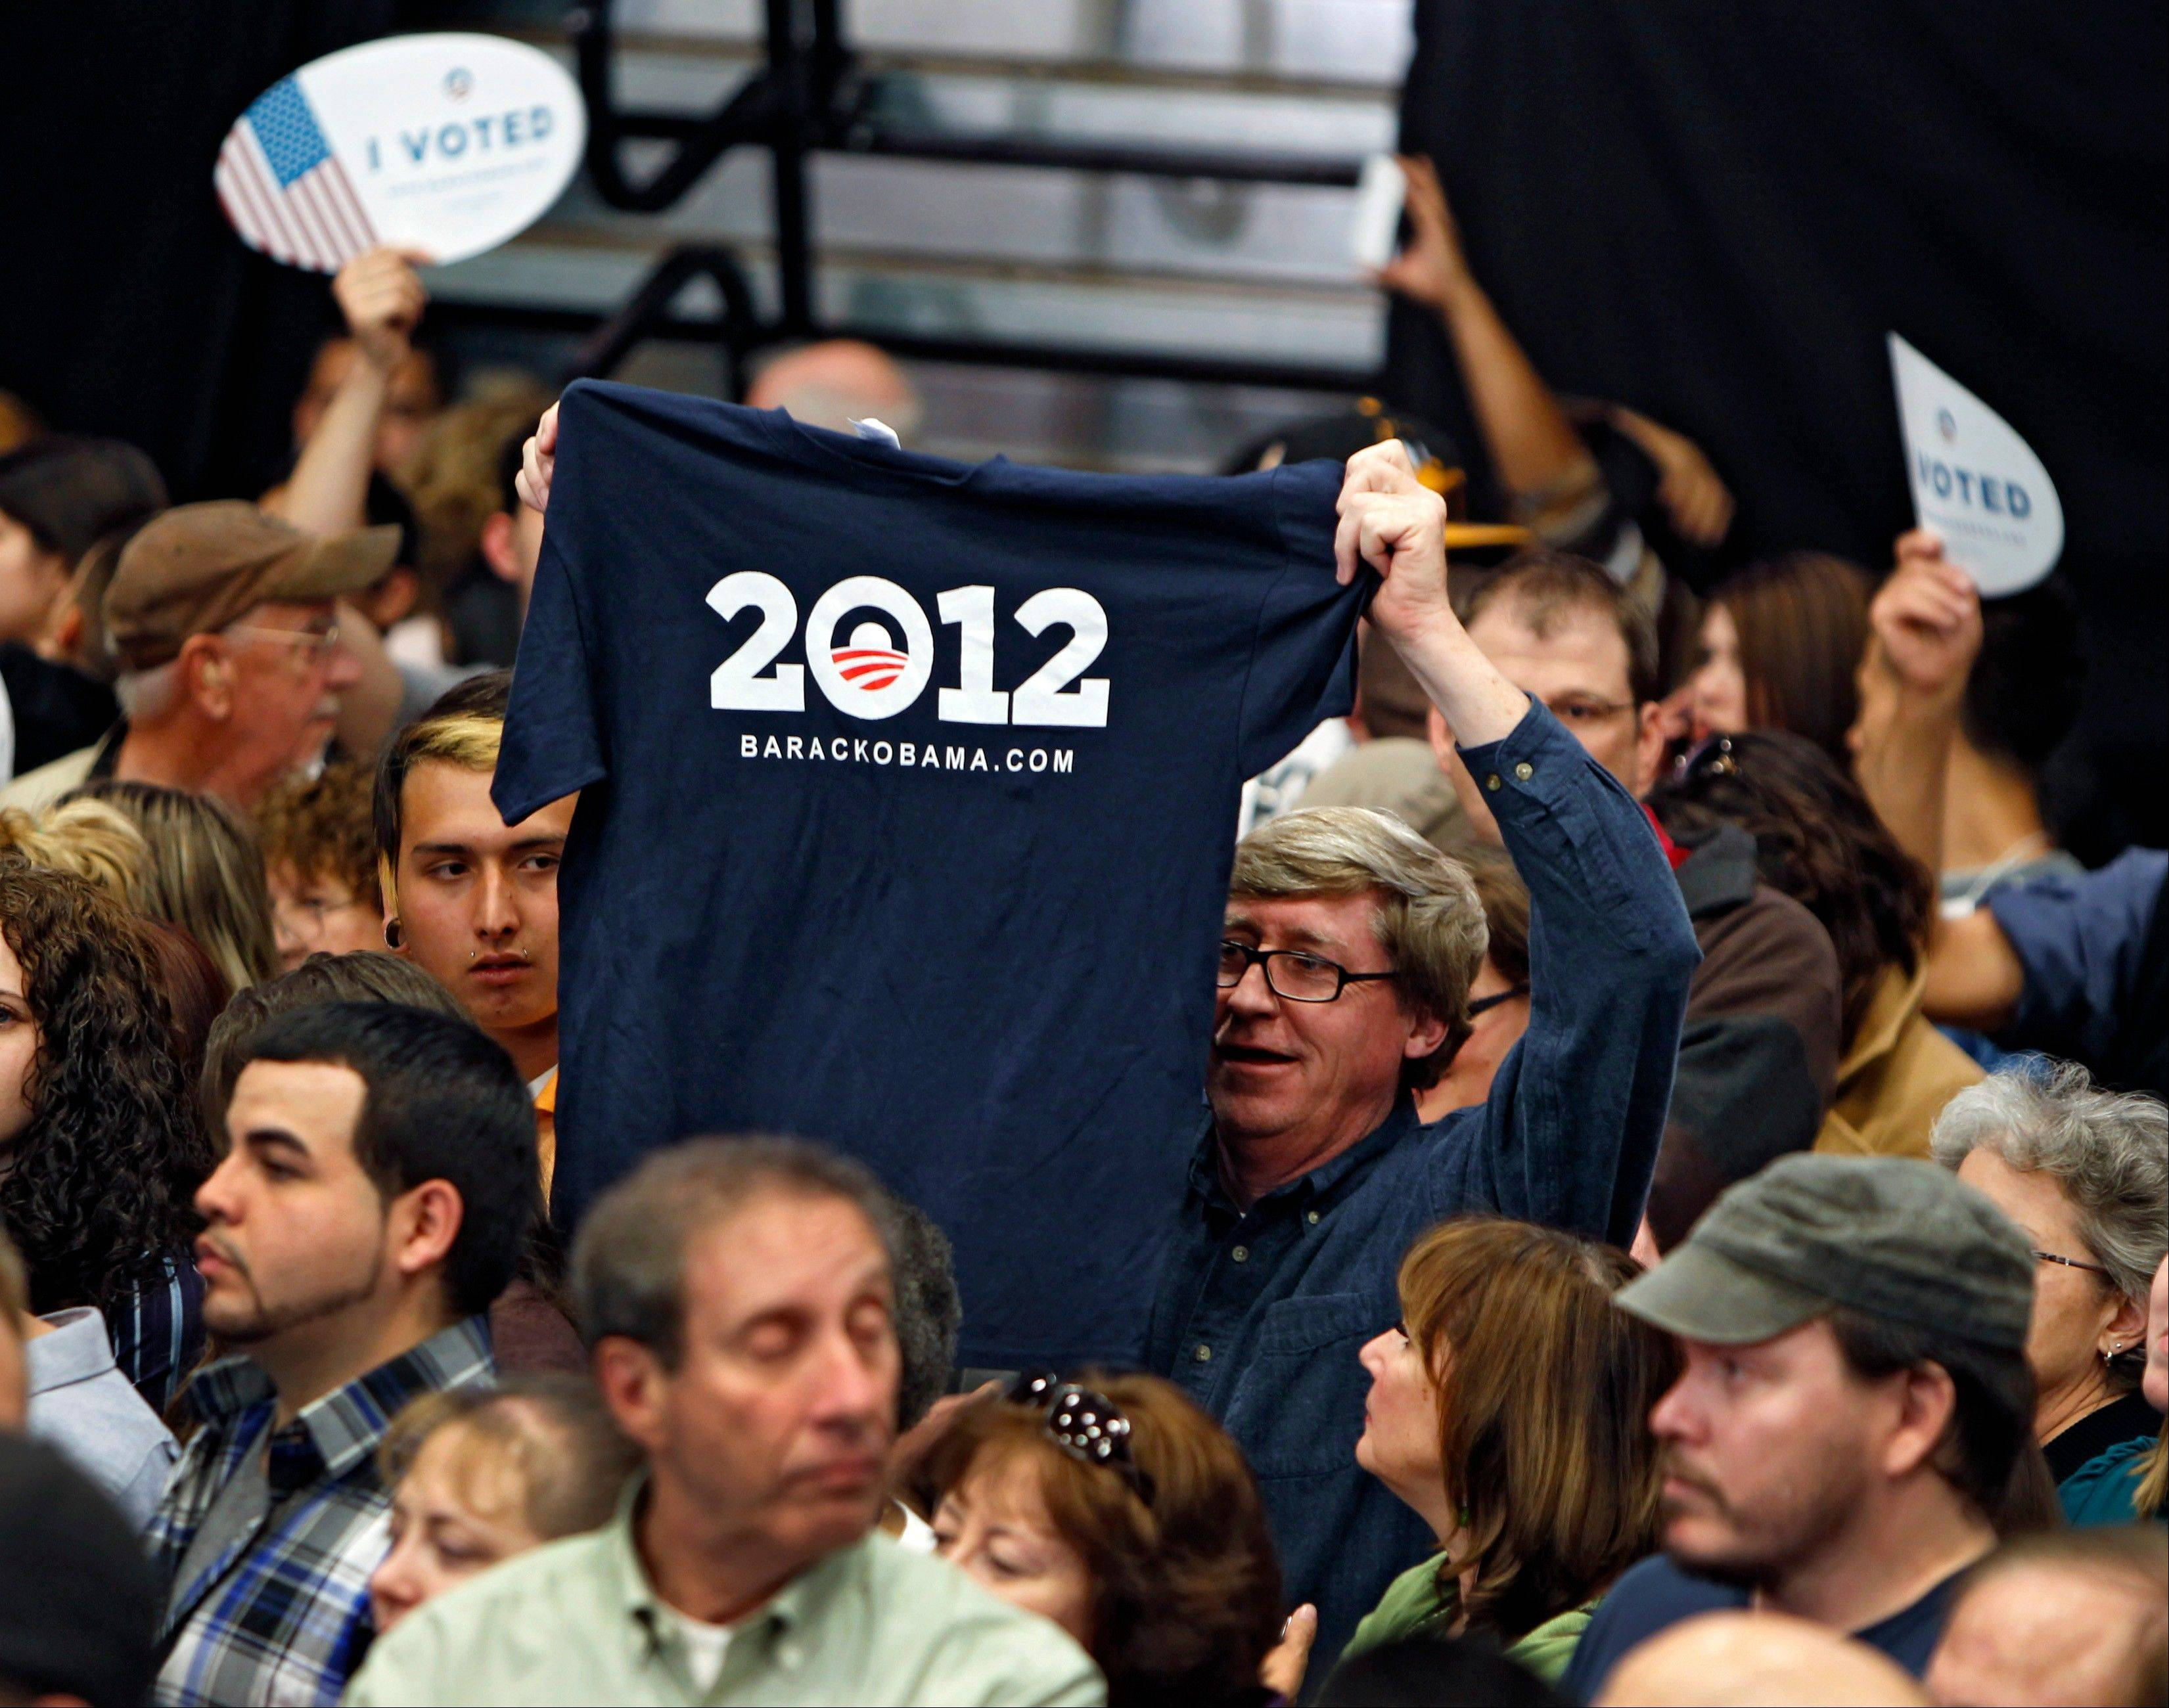 An Obama supporter holds up a 2012 shirt supporting President Barack Obama at a campaign rally at Adams City High School in Commerce City, Colo., Tuesday, Oct. 30, 2012.